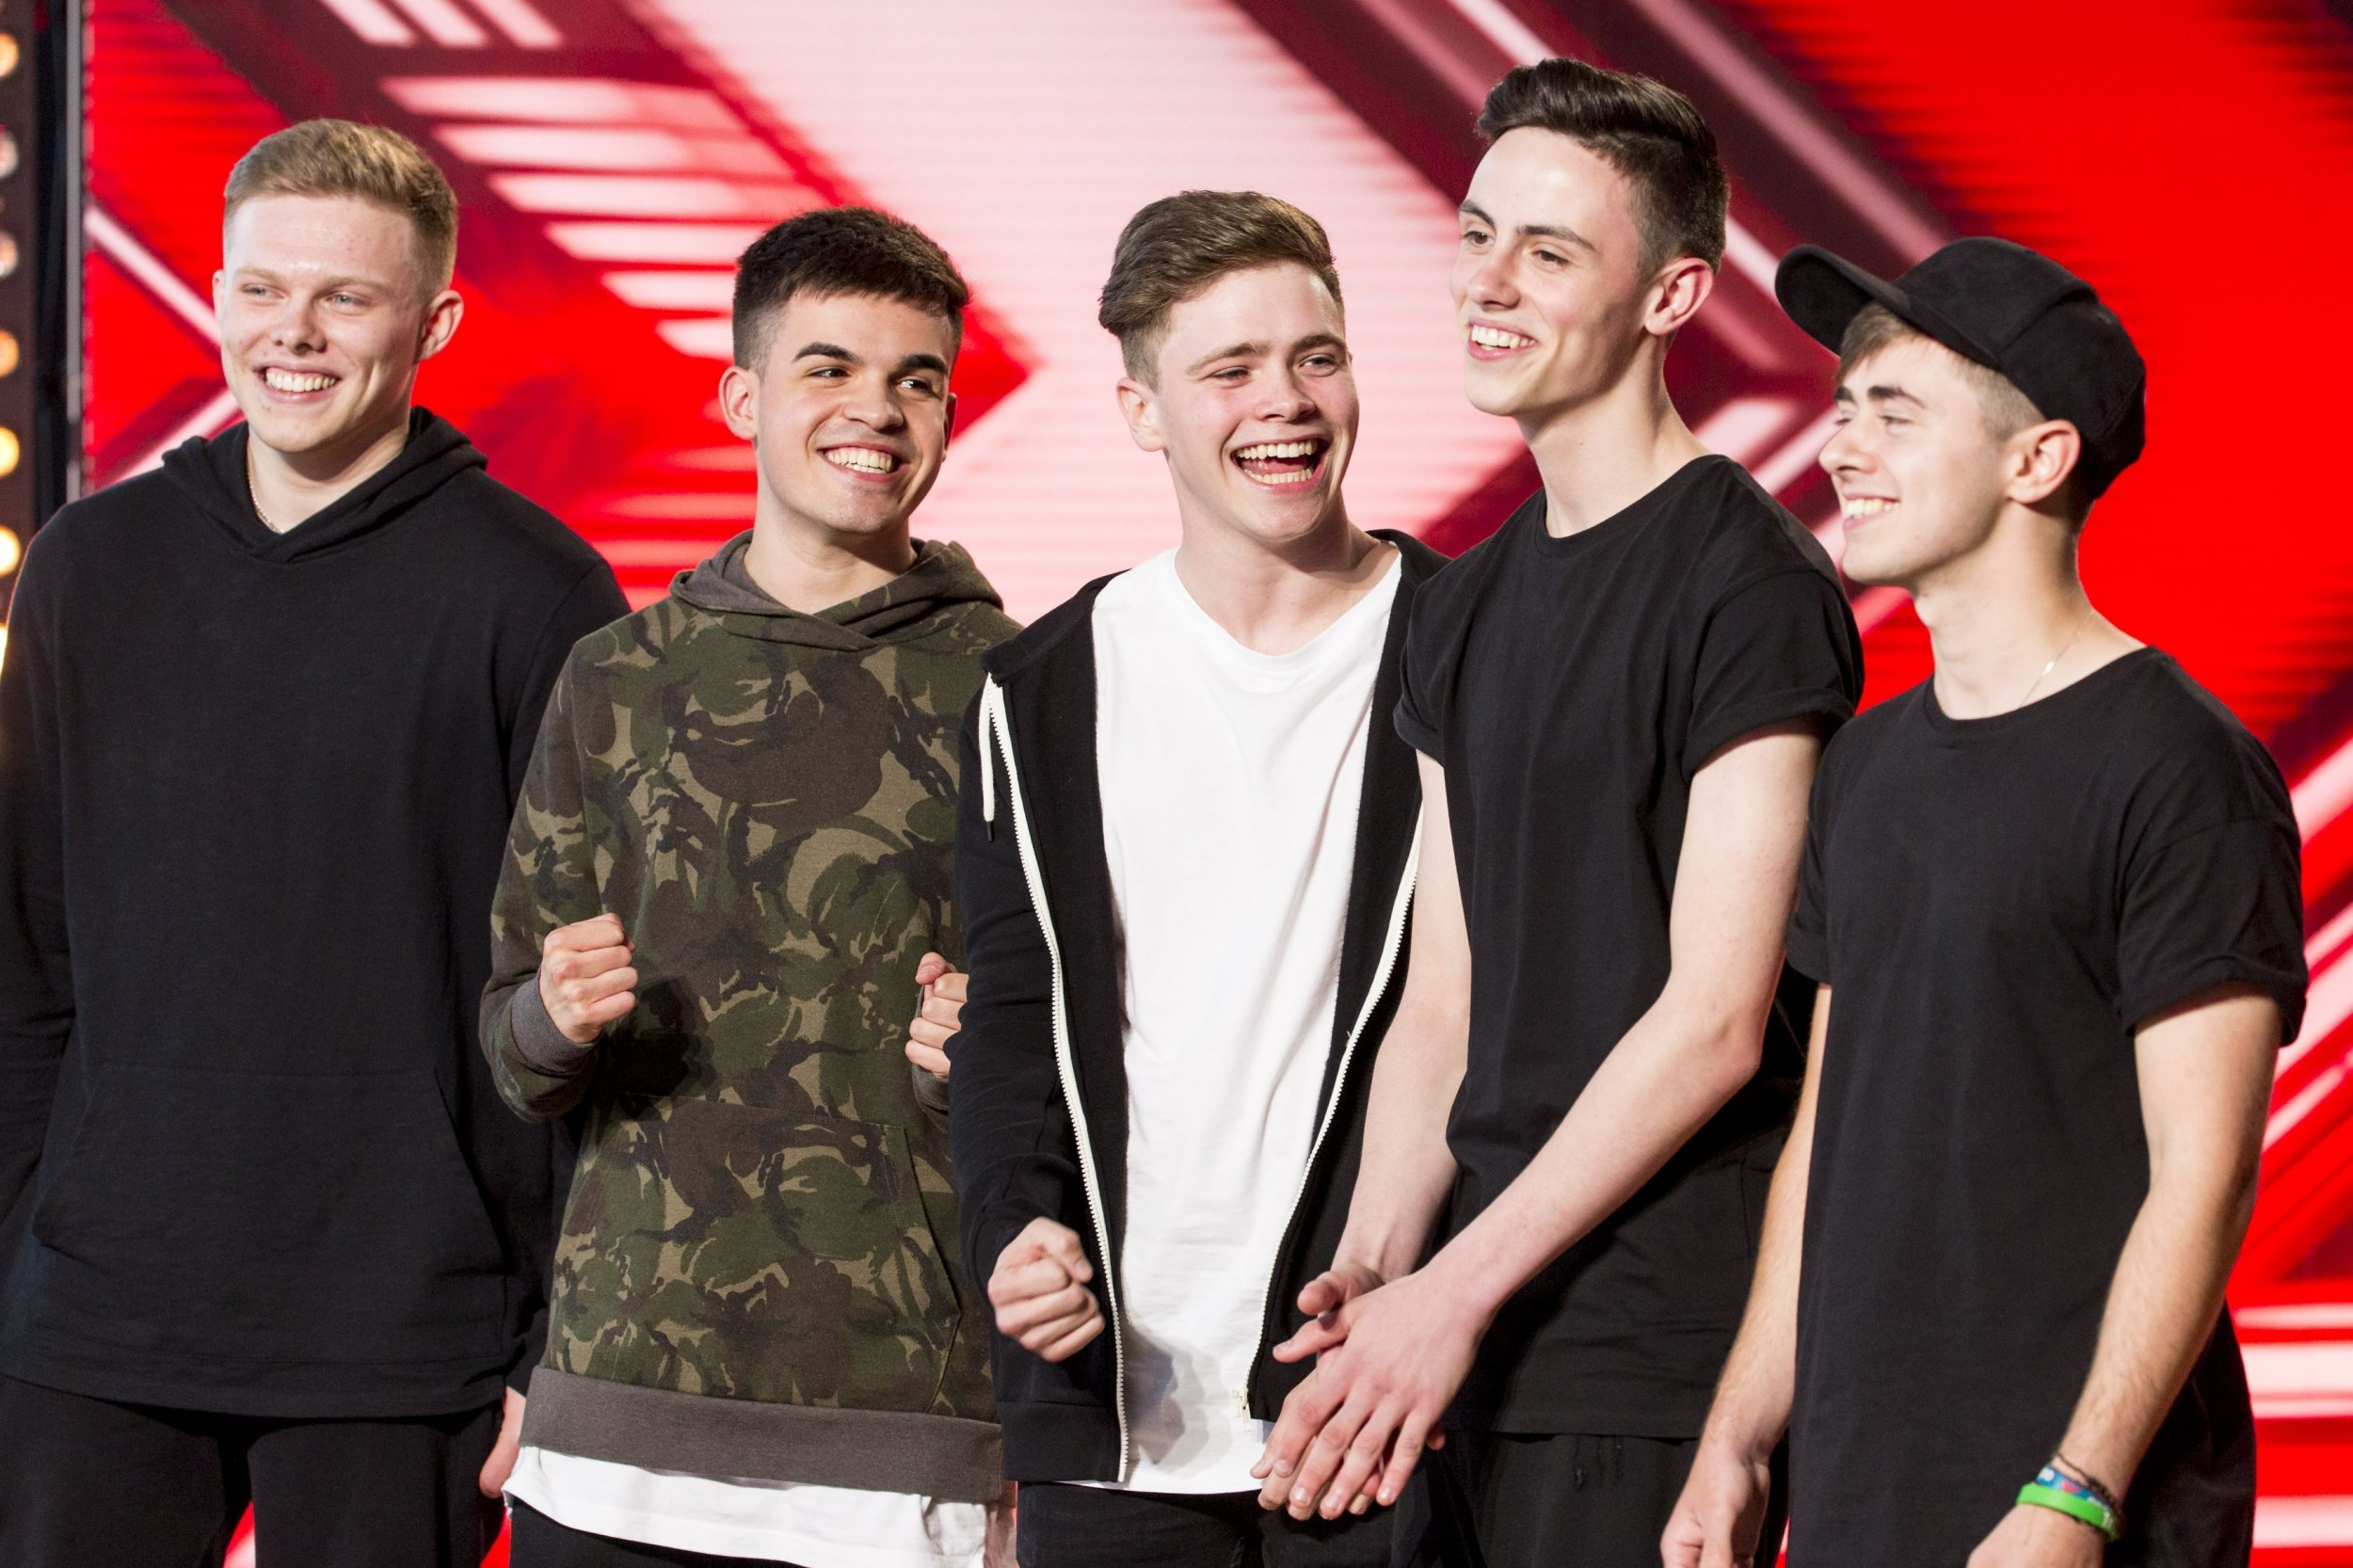 MANDATORY CREDIT REQUIRED: SYCO/THAMES TV ITV undated handout photo of Yes Lad, during the audition stage for the ITV1 talent show, The X Factor. PRESS ASSOCIATION Photo. Issue date: Saturday August 27, 2016. See PA story SHOWBIZ XFactor. Photo credit should read: Syco/Thames TV/PA Wire NOTE TO EDITORS: This handout photo may only be used in for editorial reporting purposes for the contemporaneous illustration of events, things or the people in the image or facts mentioned in the caption. Reuse of the picture may require further permission from the copyright holder.